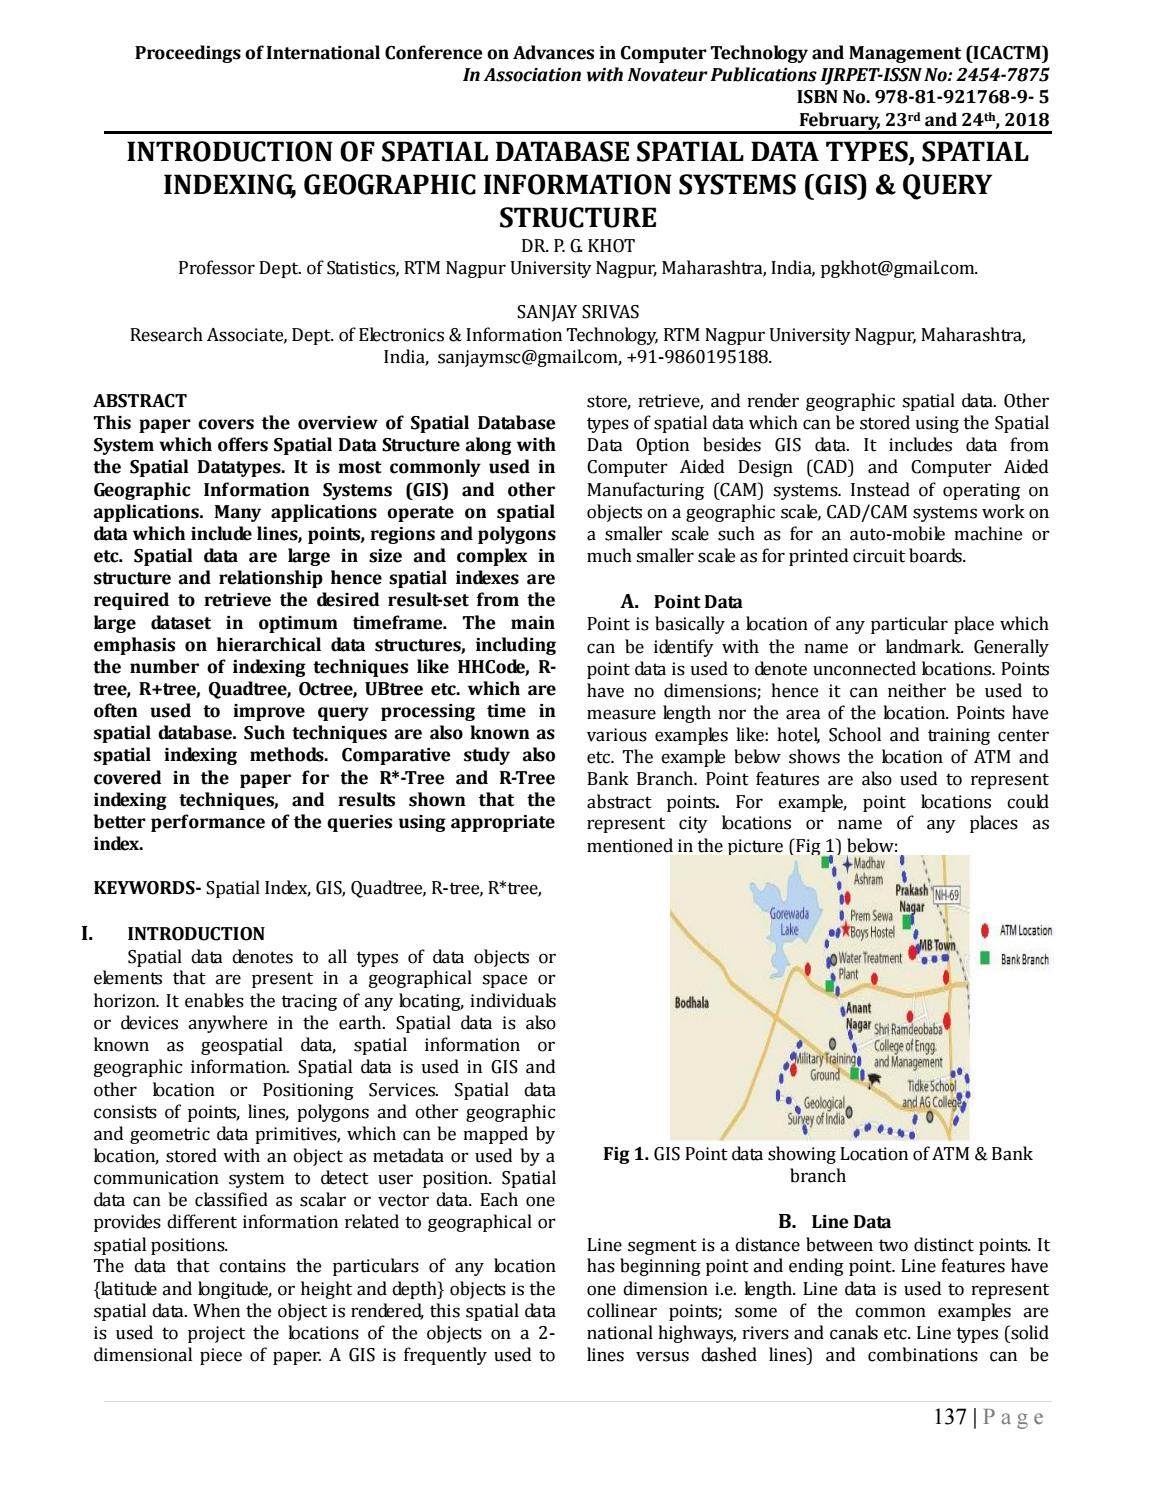 INTRODUCTION OF SPATIAL DATABASE SPATIAL DATA TYPES, SPATIAL